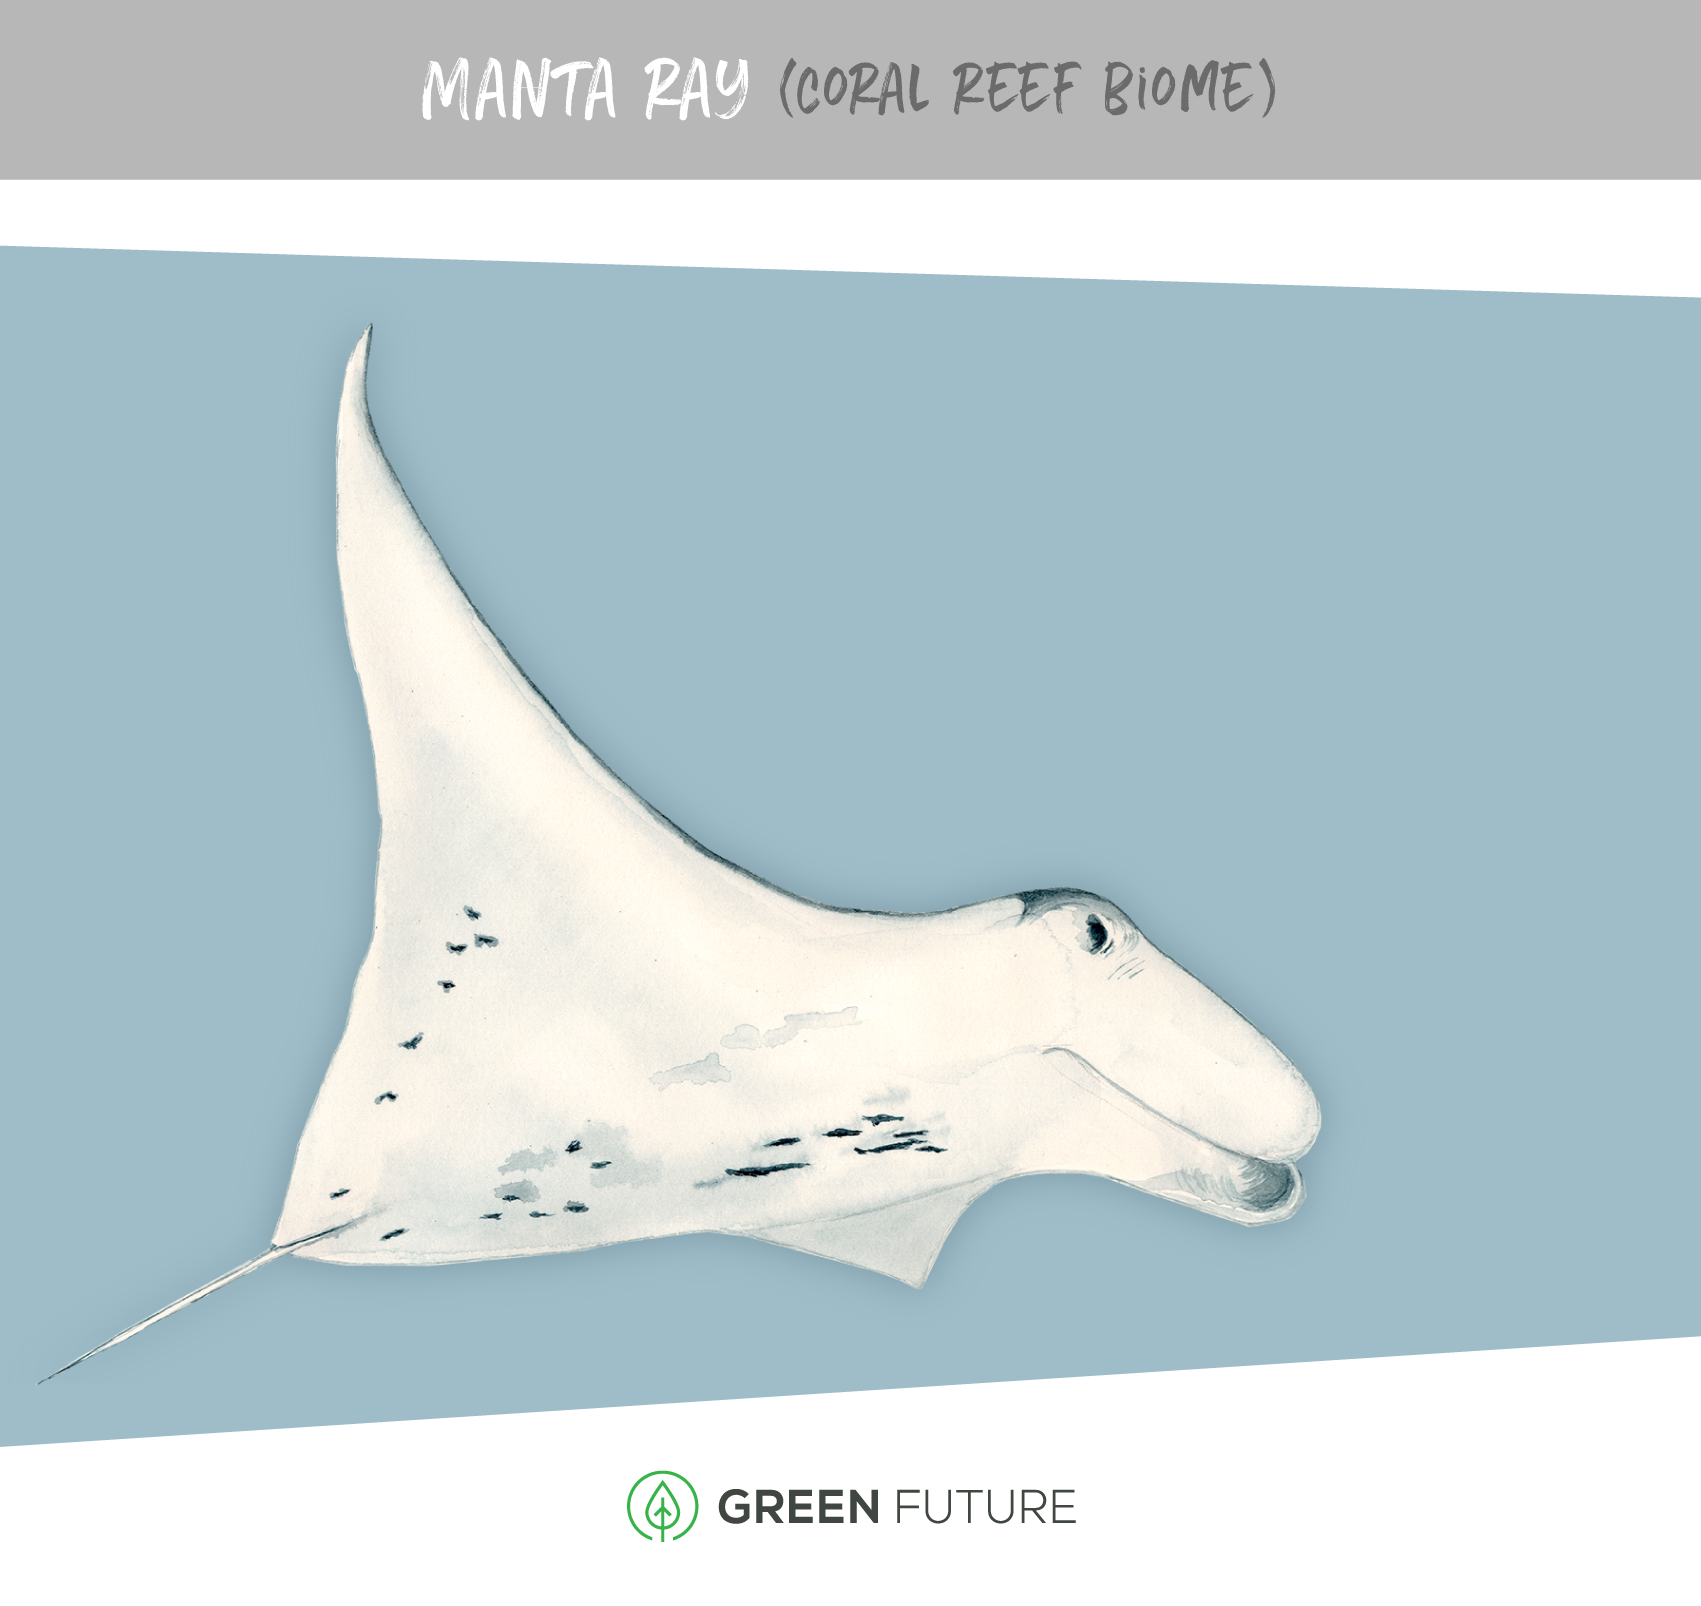 manta ray illustration